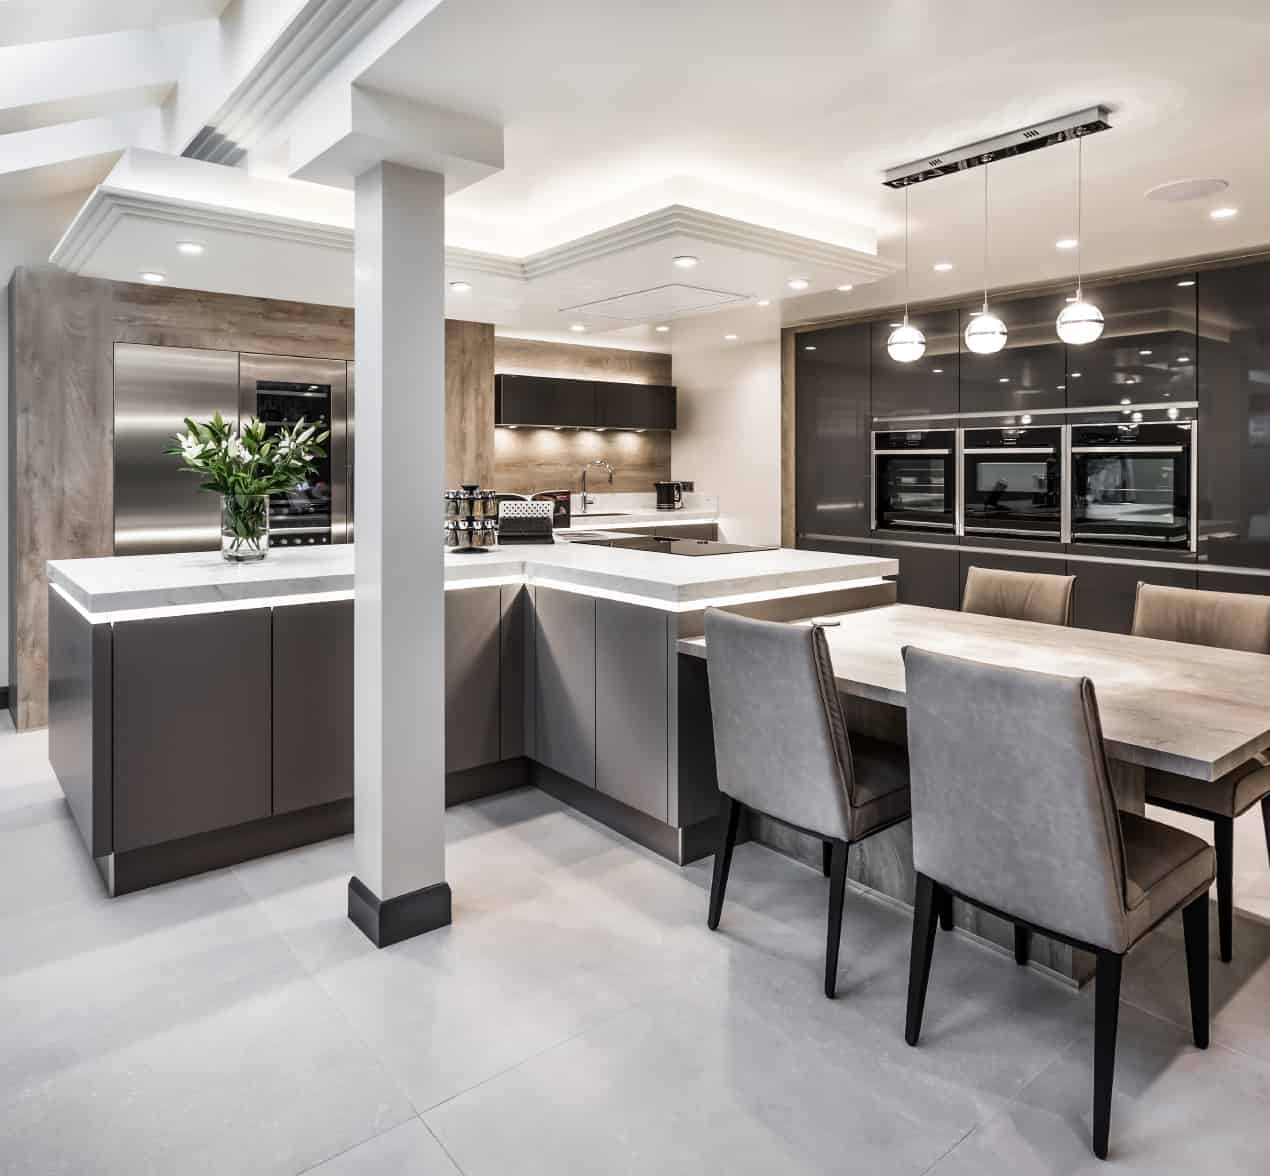 Modern Kitchens - Malindu Exports on Modern Kitchens  id=88629